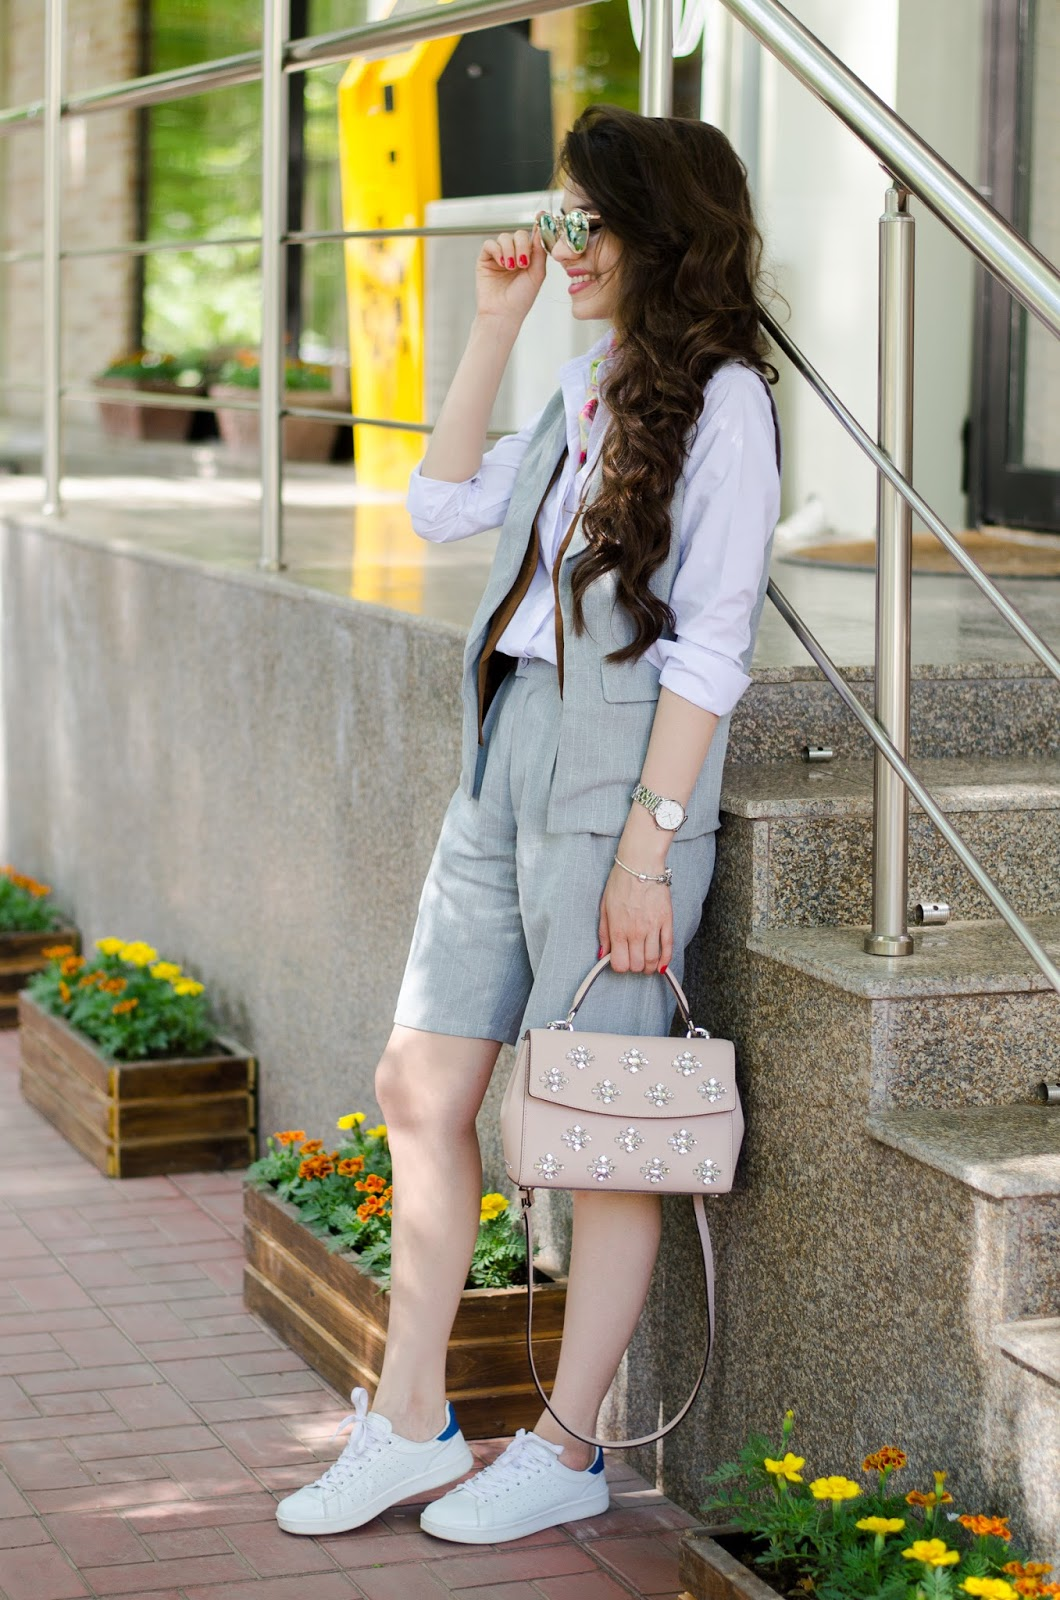 fashion blogger diyorasnotes diyora beta grey suit vipme white sneakers casual outfit scarf asos how to style suit for summer